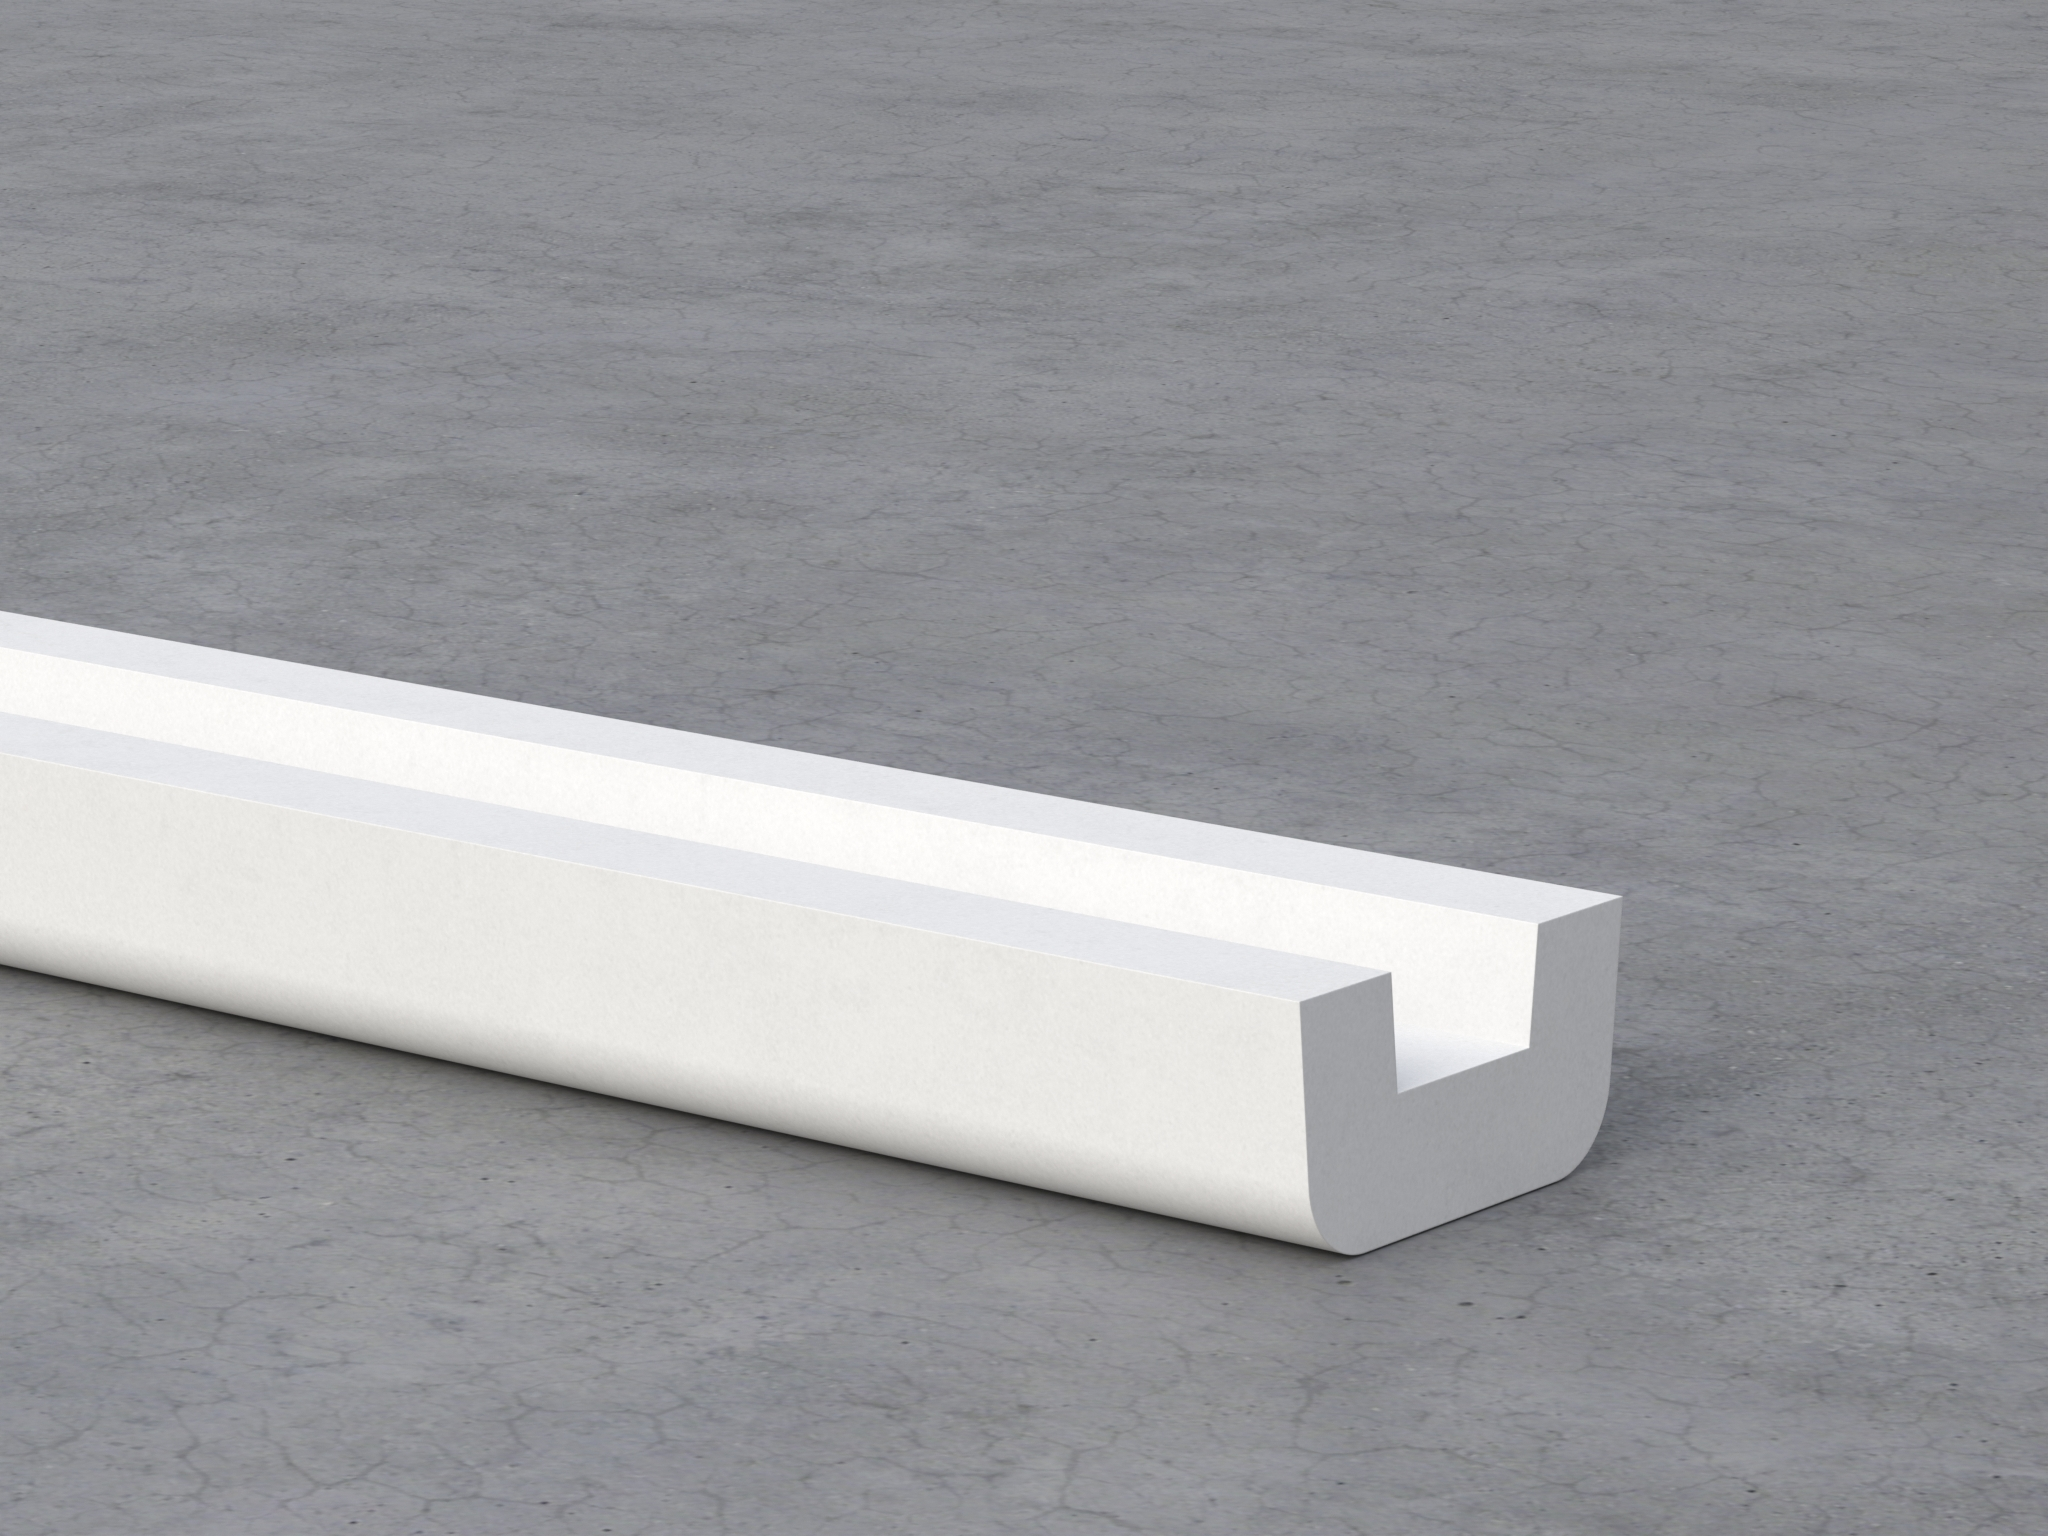 U-plaster fire-resistant accessory for passive fire protection